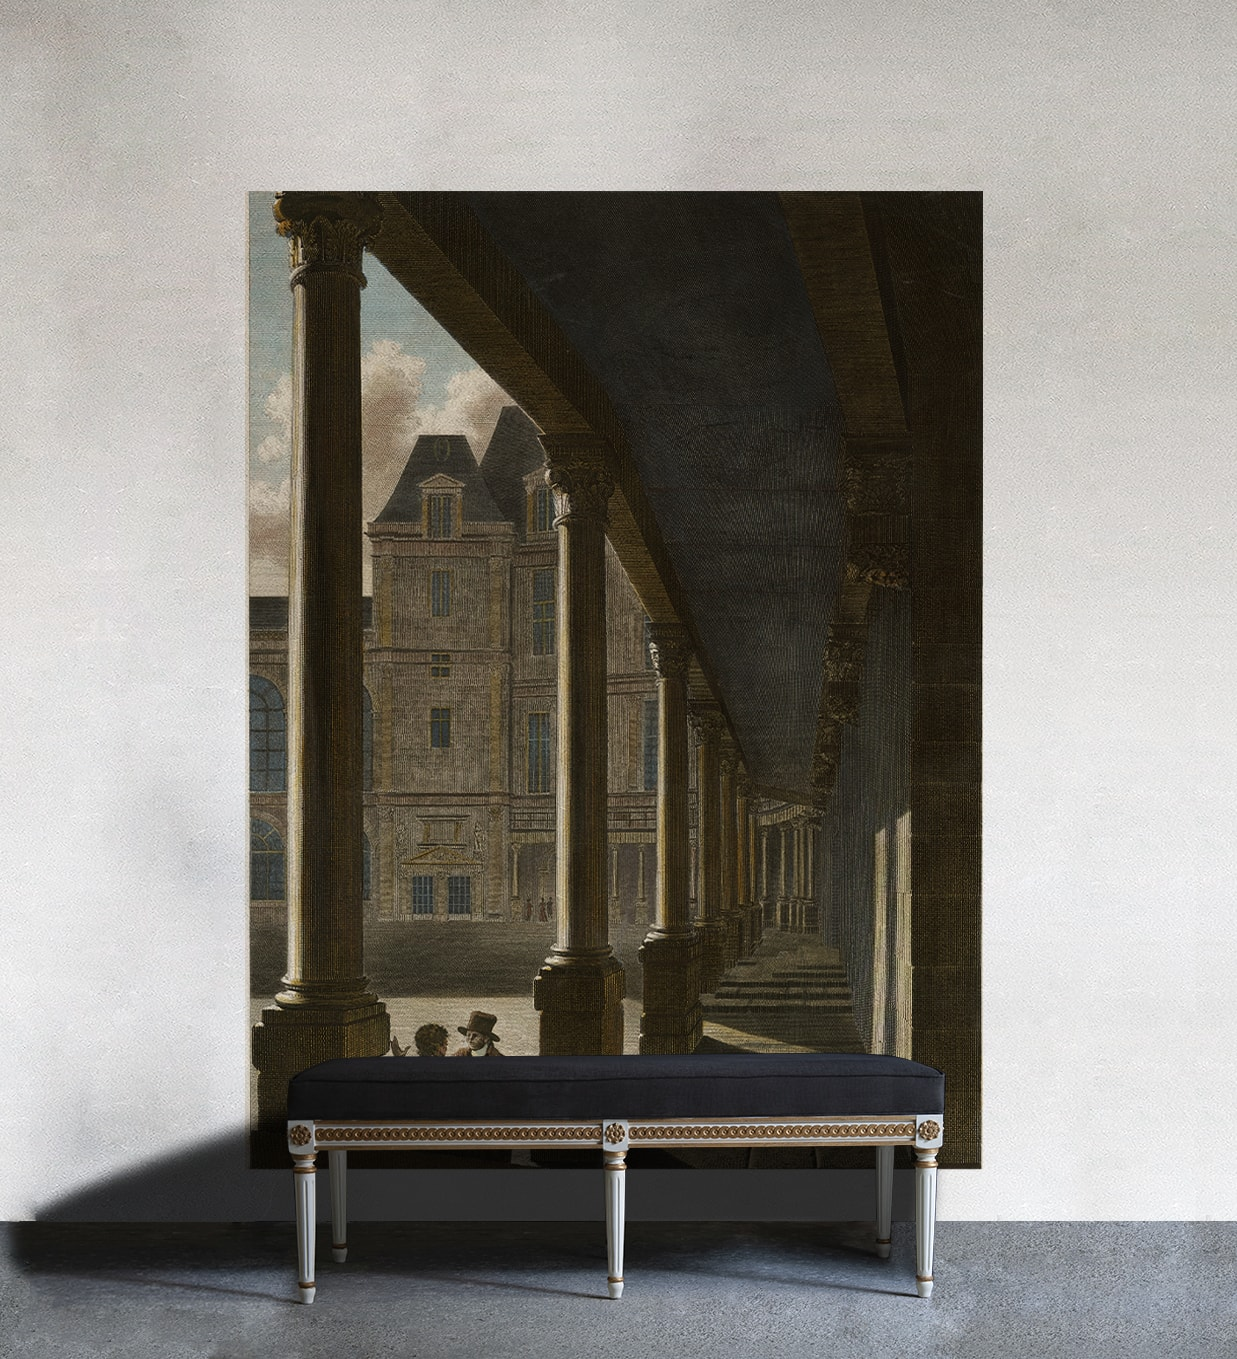 LOUVRE-C-Panoramic-Elusio-Antique-Design-product.jpg